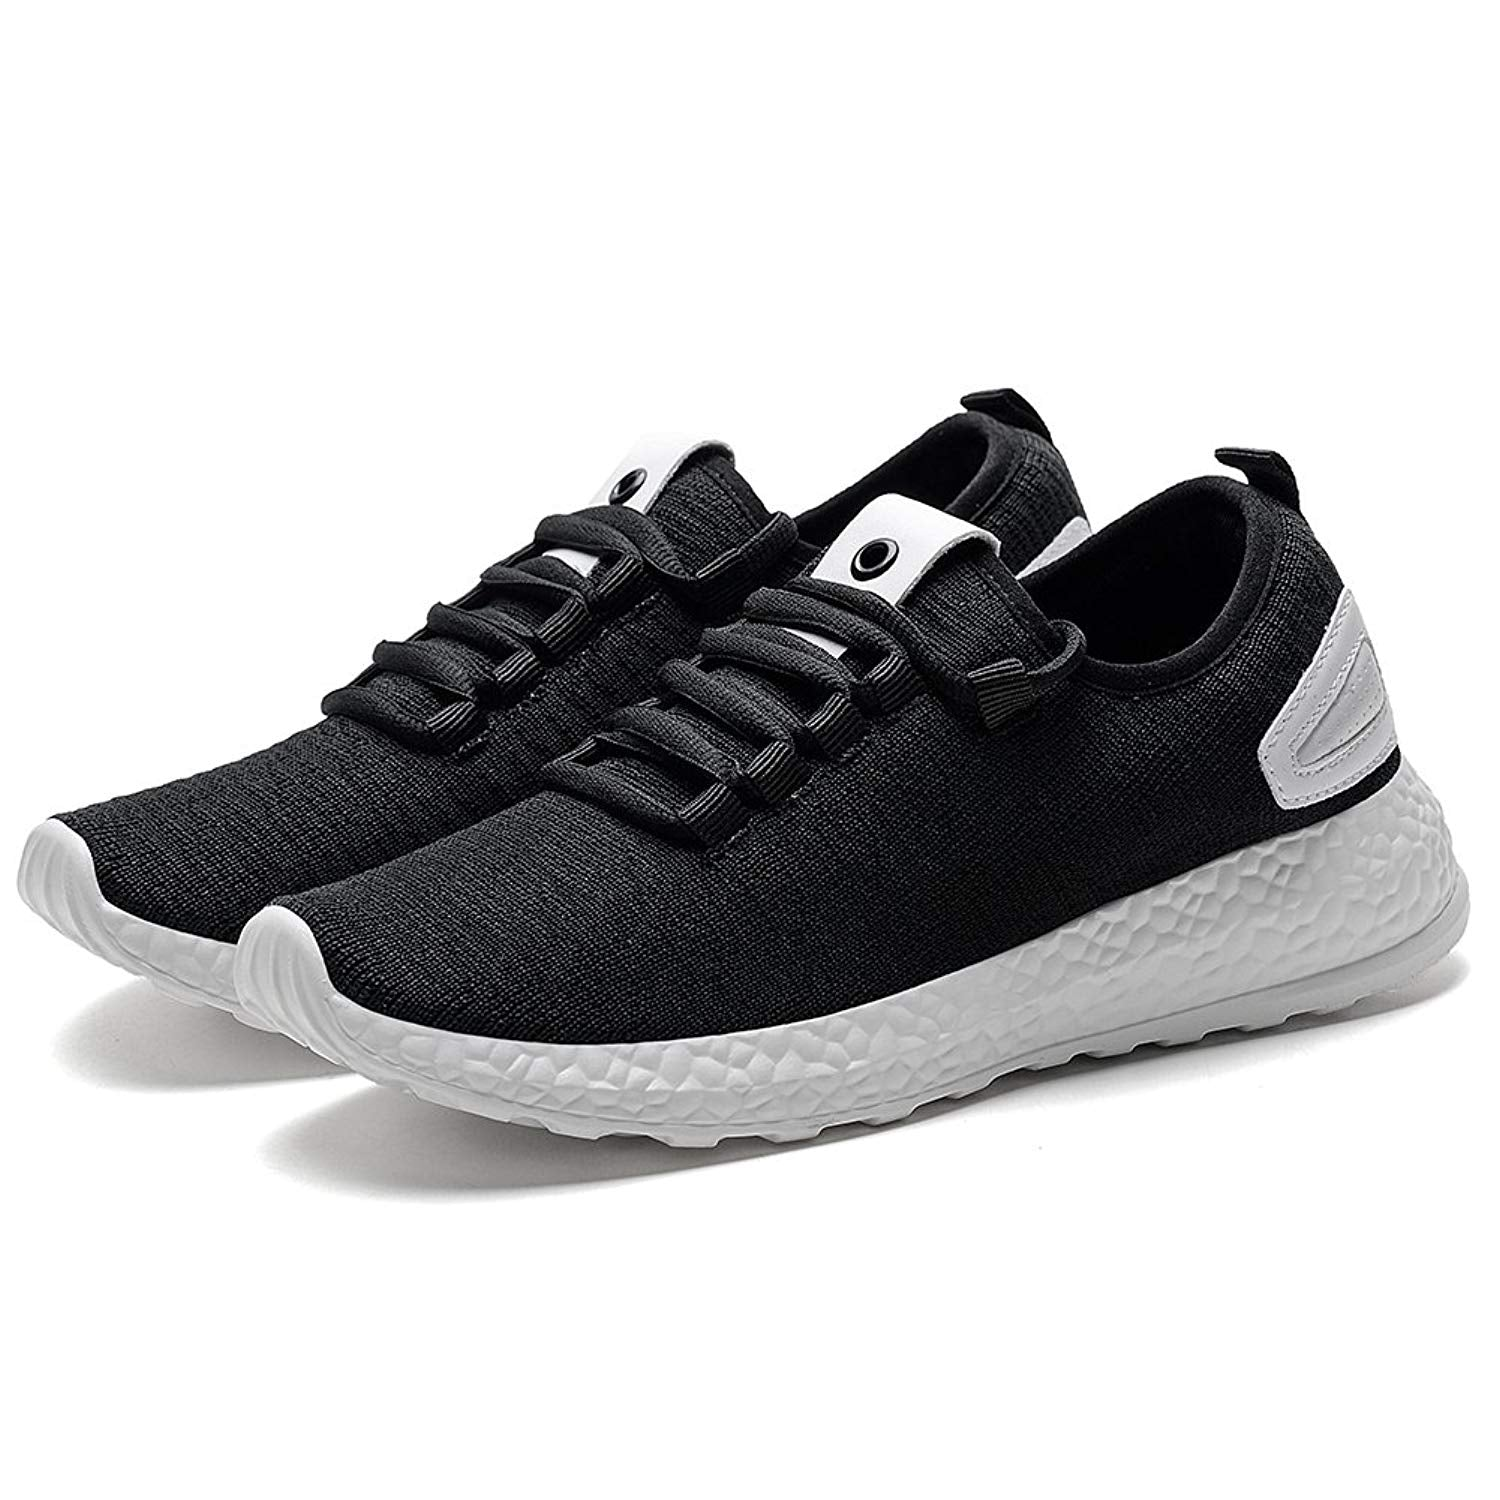 Konhill Unisex Athletic Casual Sneakers